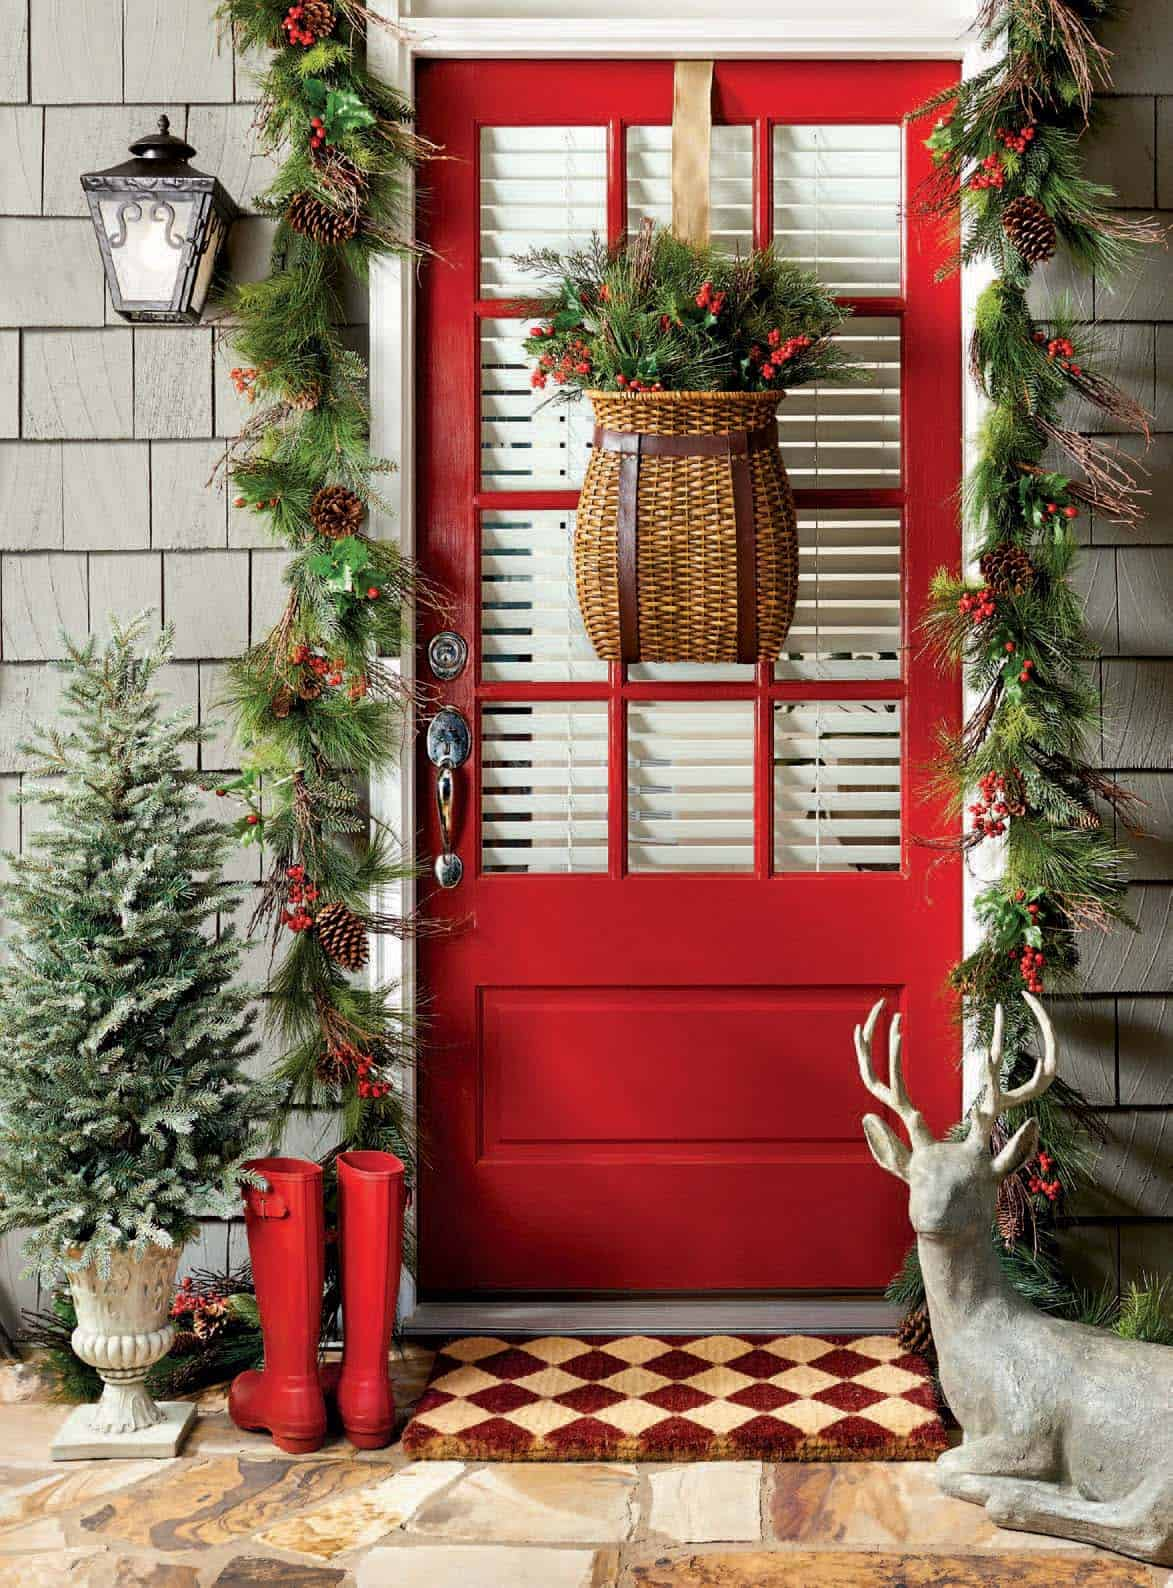 40 fabulous rustic country christmas decorating ideas Christmas decorating themes